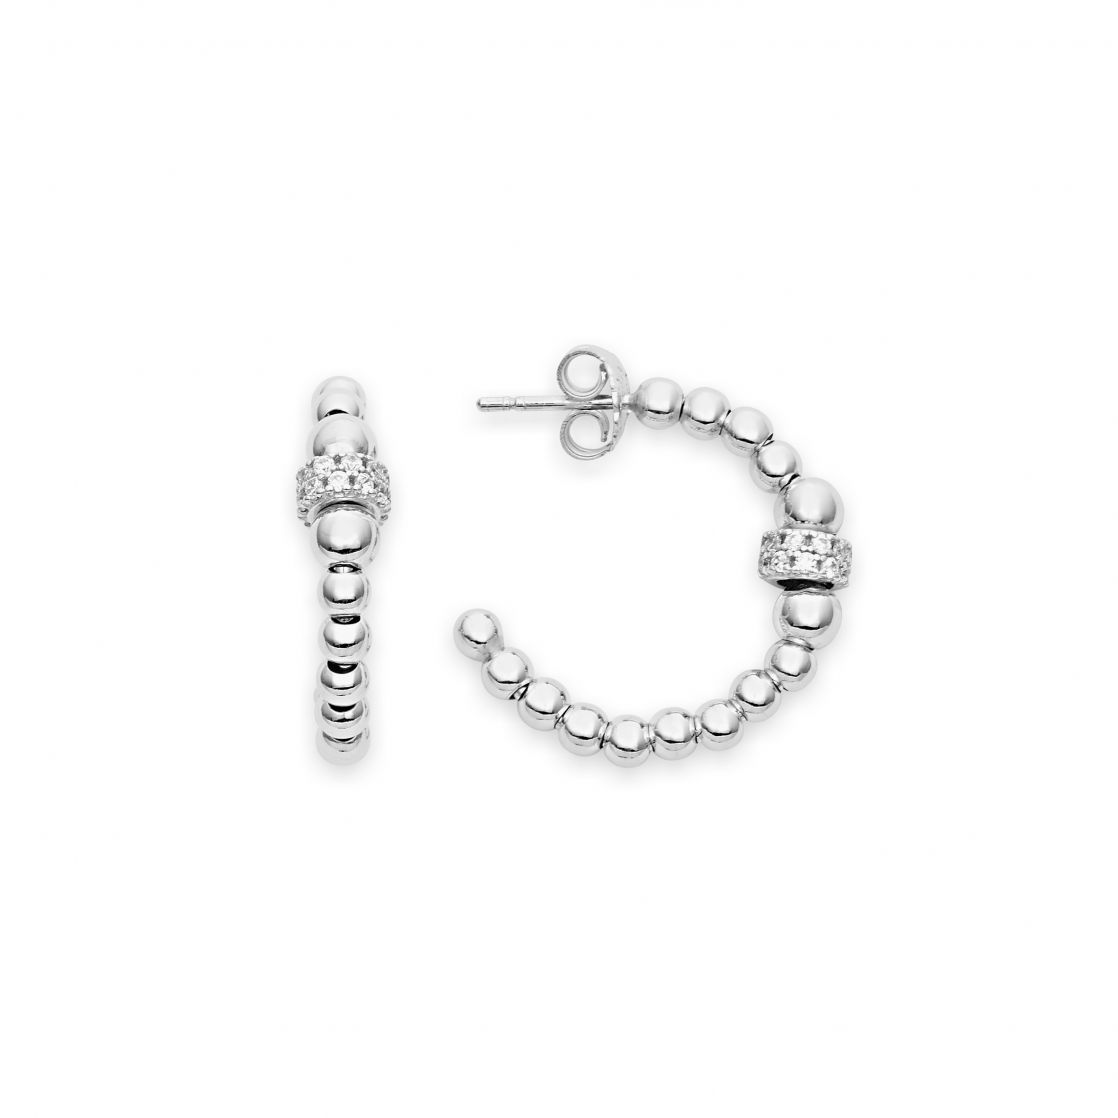 Earrings with beads and pave'